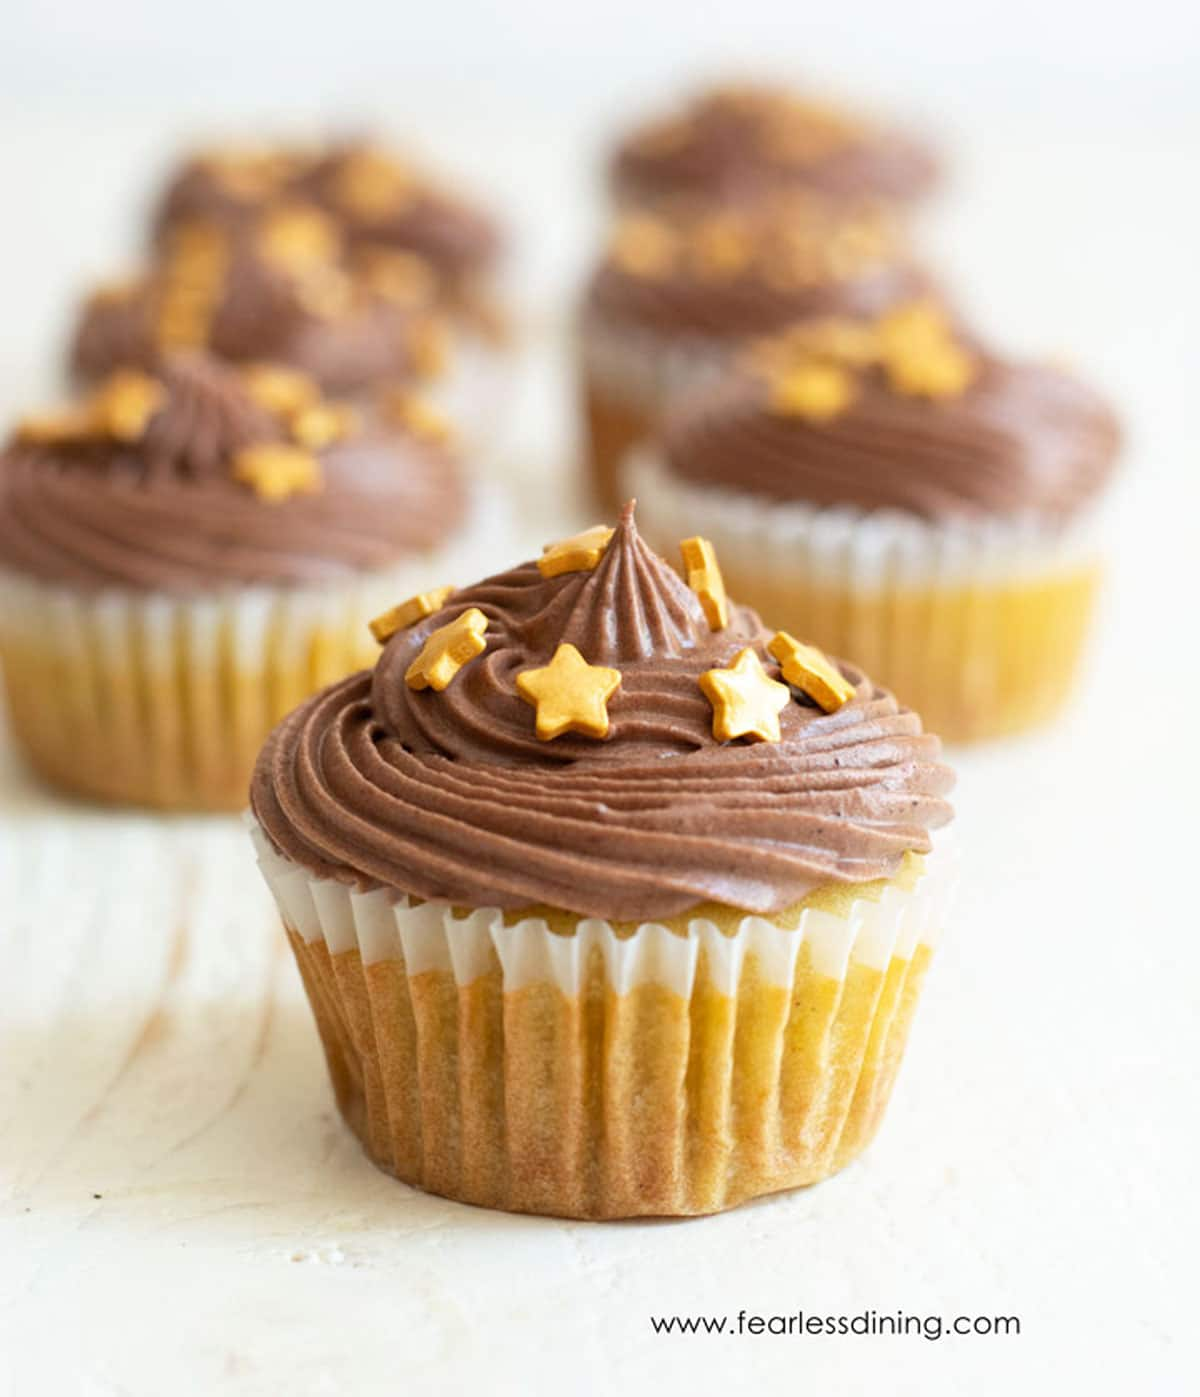 rows of vanilla cupcakes topped with chocolate frosting